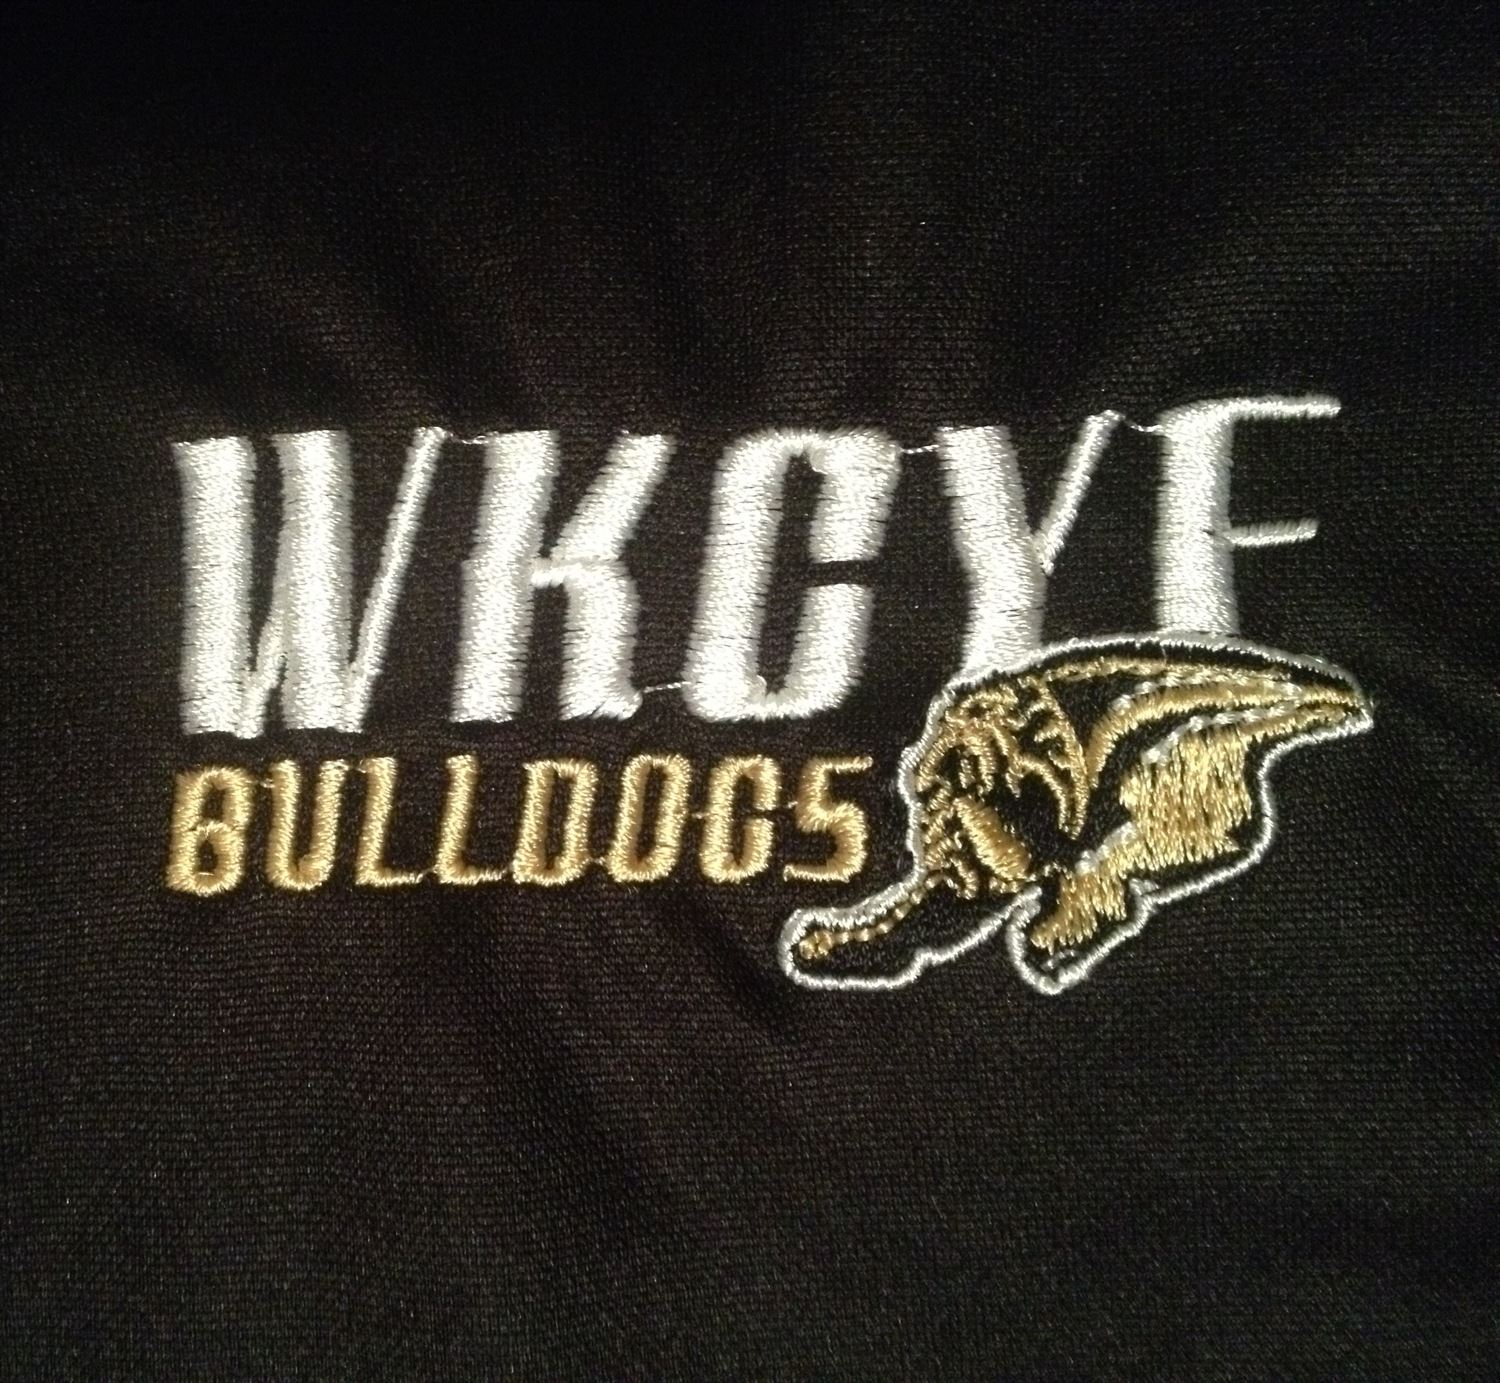 WKC Bulldogs - WKC Bulldogs Middleweight Big 10